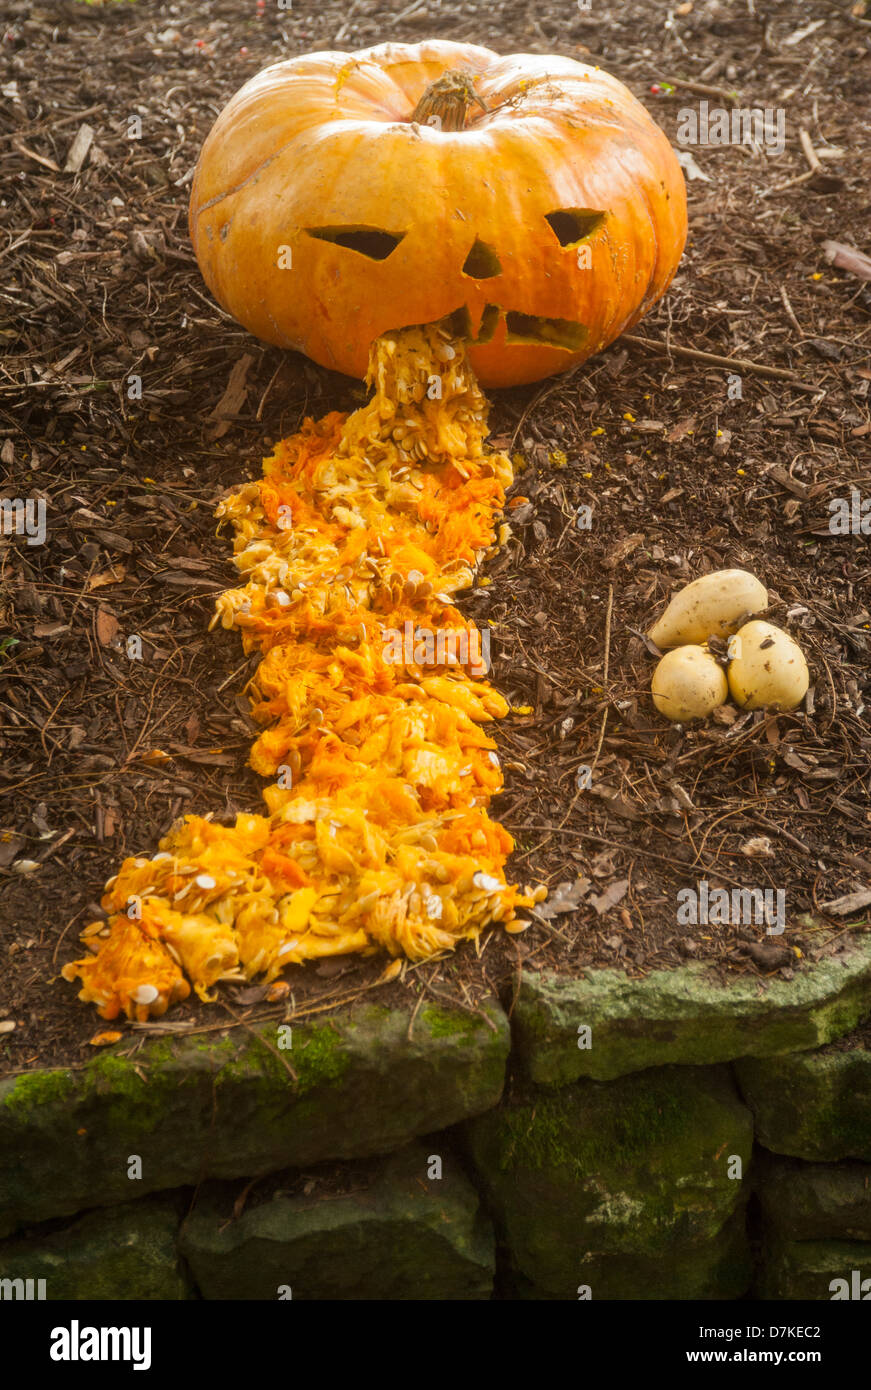 Sickly Pumpkin -  Just the thought to get you in that Halloween spirit and should make the kids smile! - Stock Image